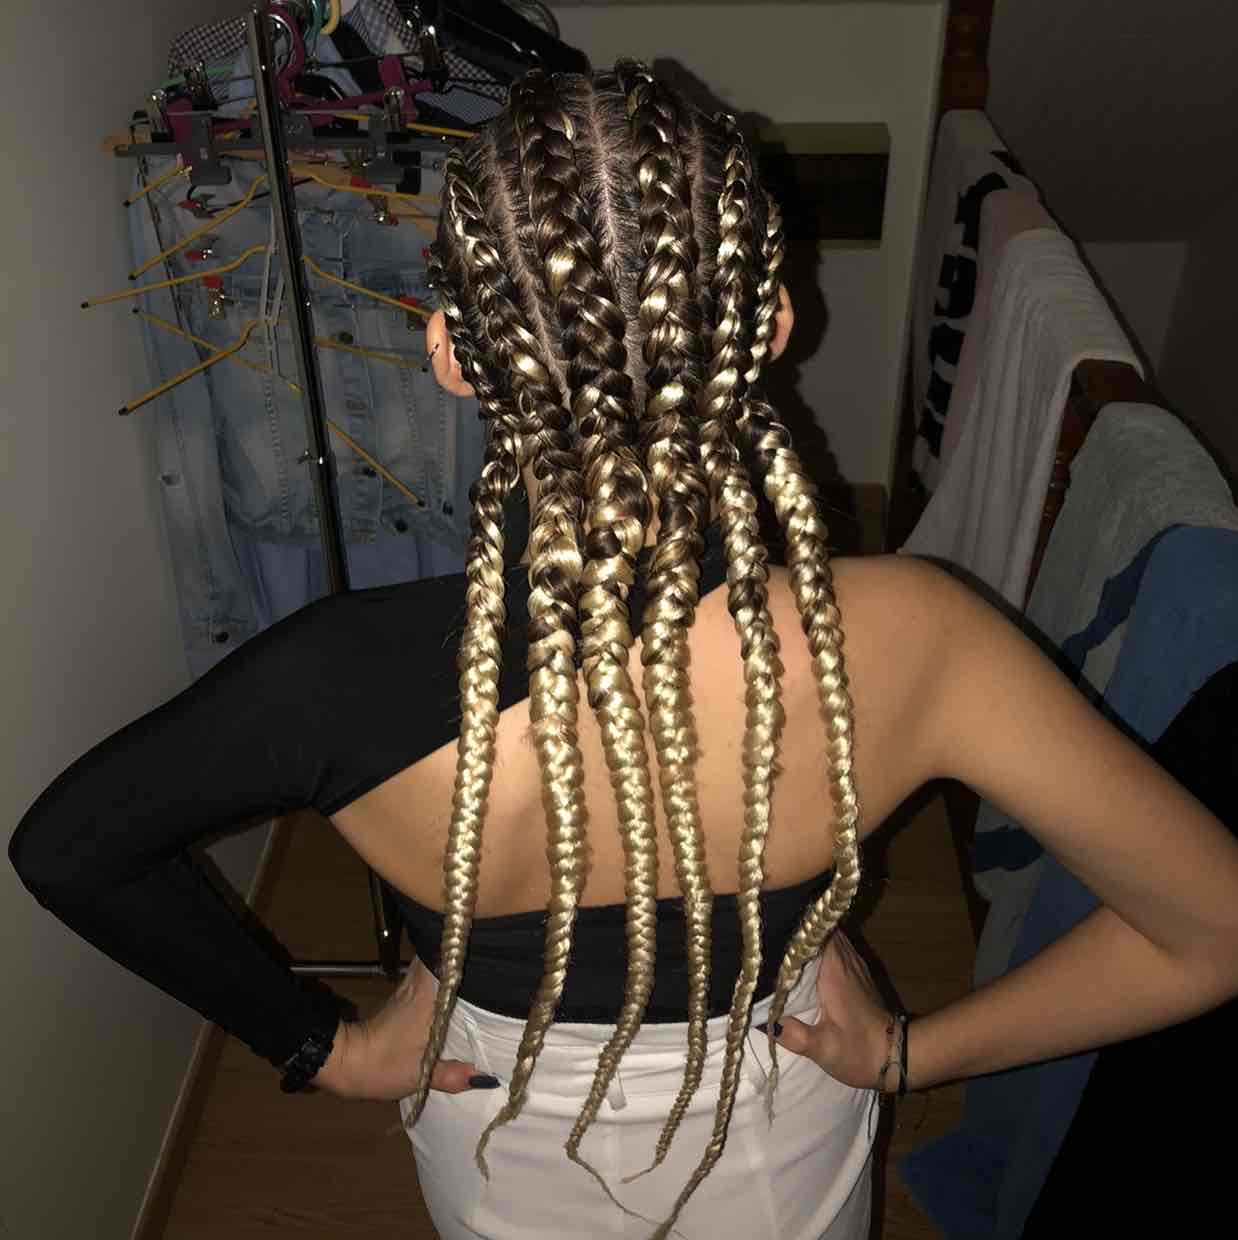 salon de coiffure afro tresse tresses box braids crochet braids vanilles tissages paris 75 77 78 91 92 93 94 95 HNZZUPLC